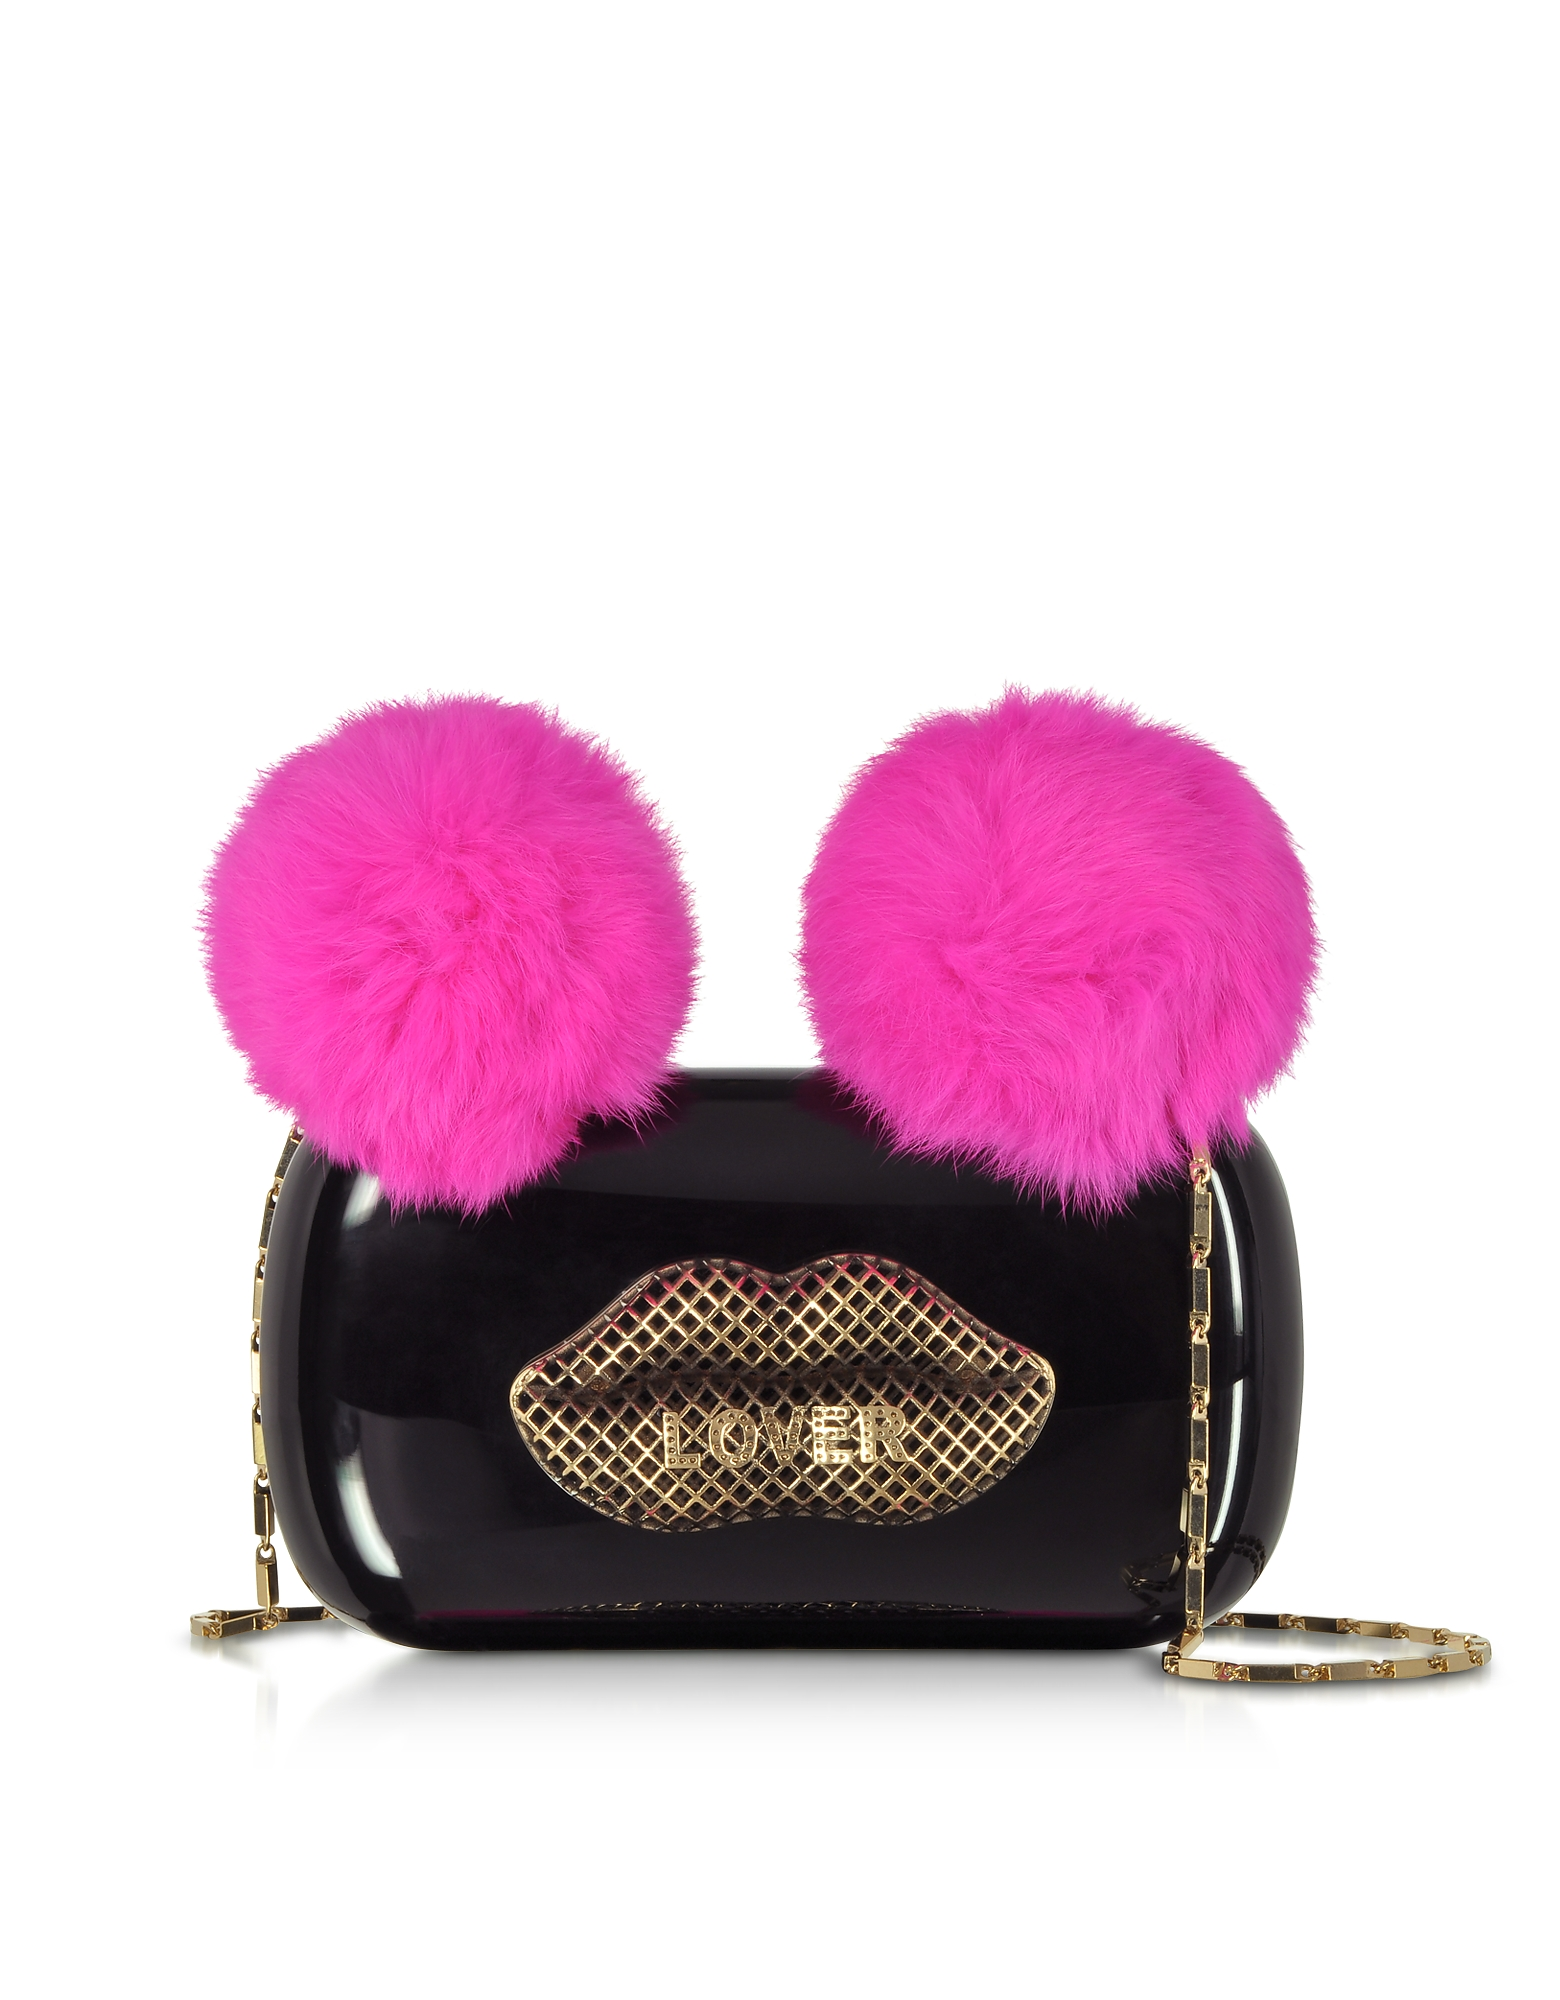 Maissa  Handbags Black Plexiglass Lover Clutch w/Pink Fur Pompoms